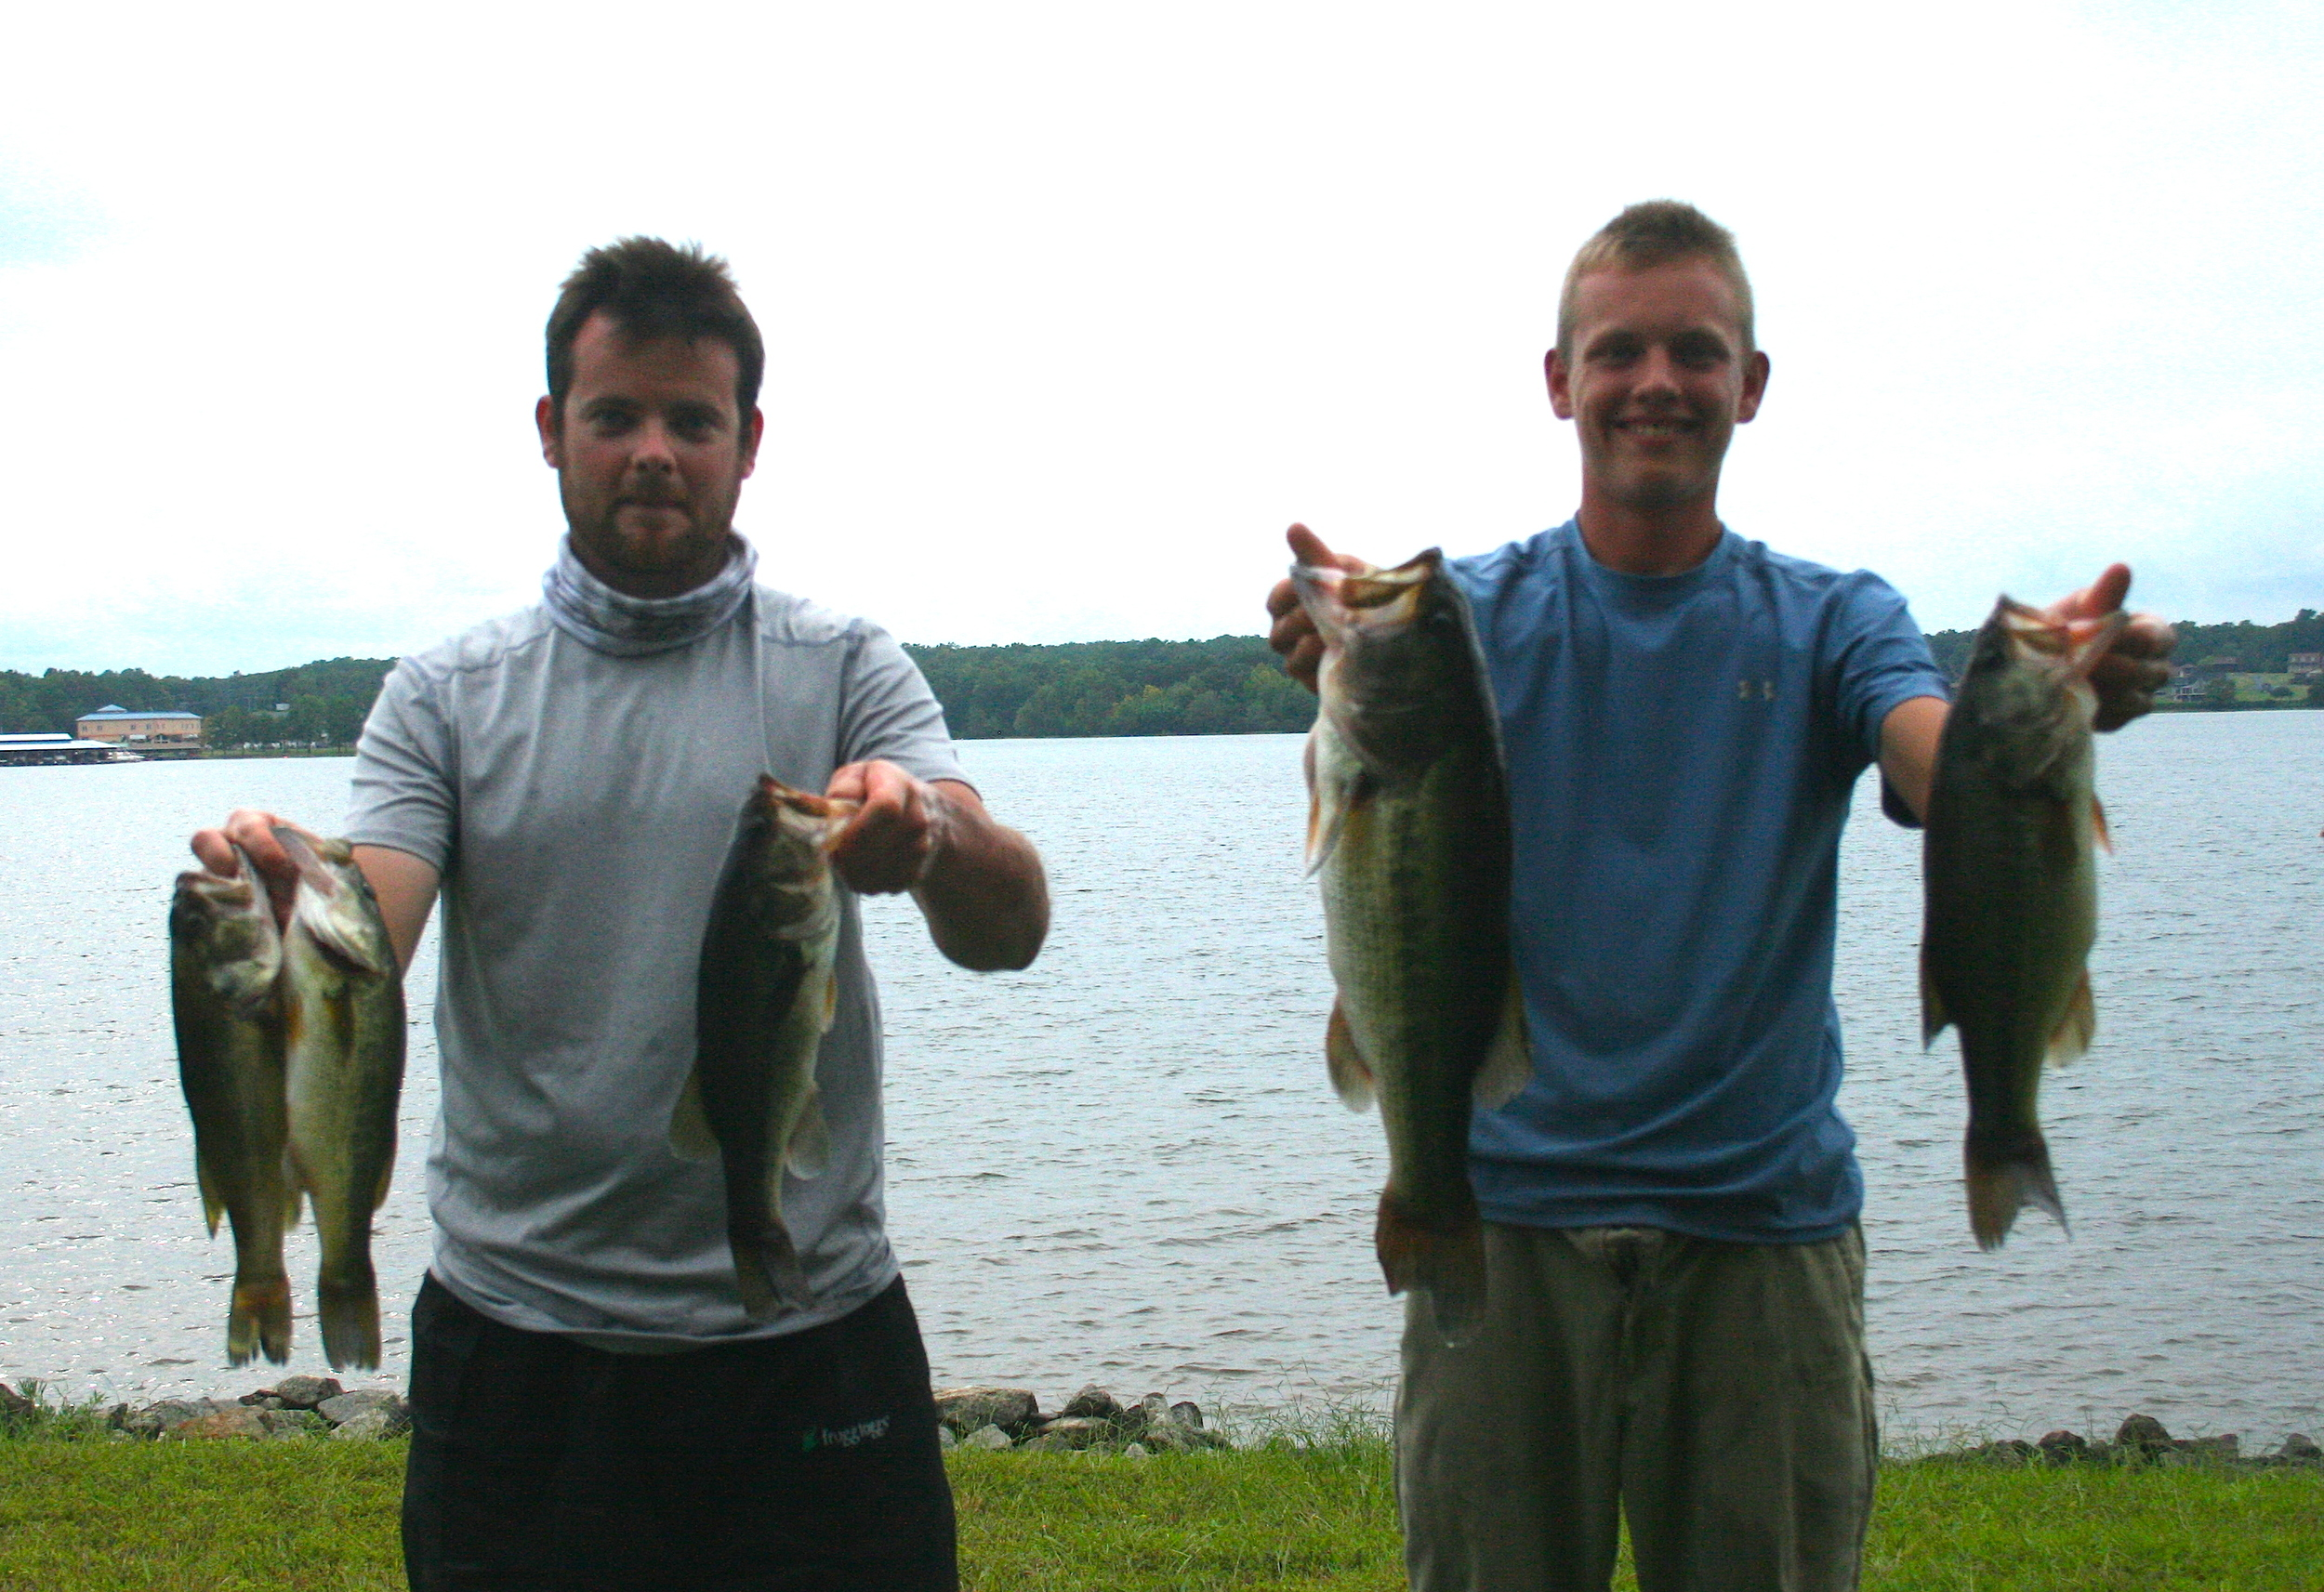 Gabe Heatwole and Dominique Morris Fourth Place 12.20 lbs